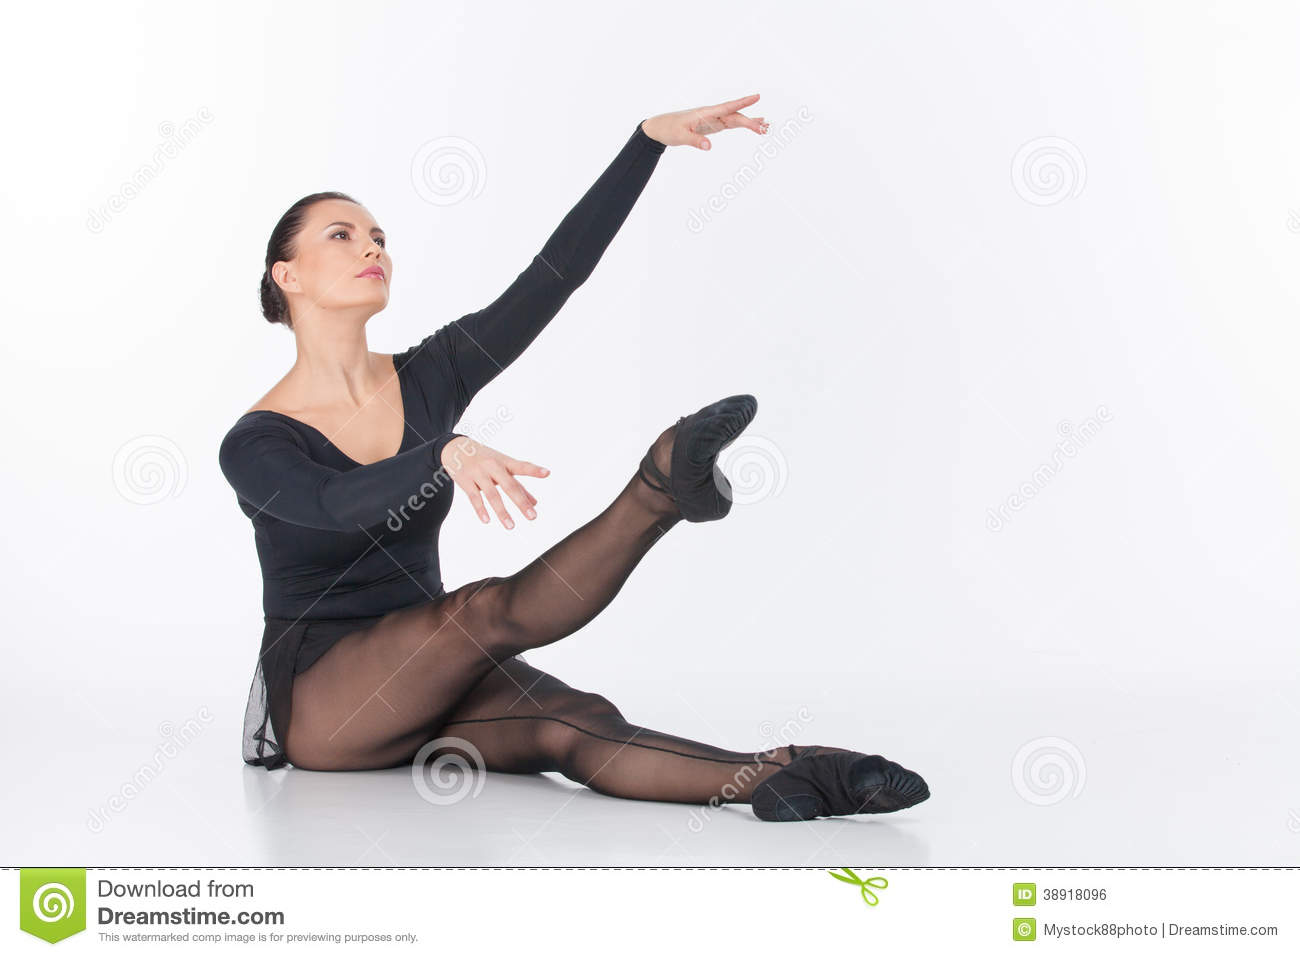 Ballet Dancer Sitting On Floor And Stretching. Stock Photo - Image: 38918096